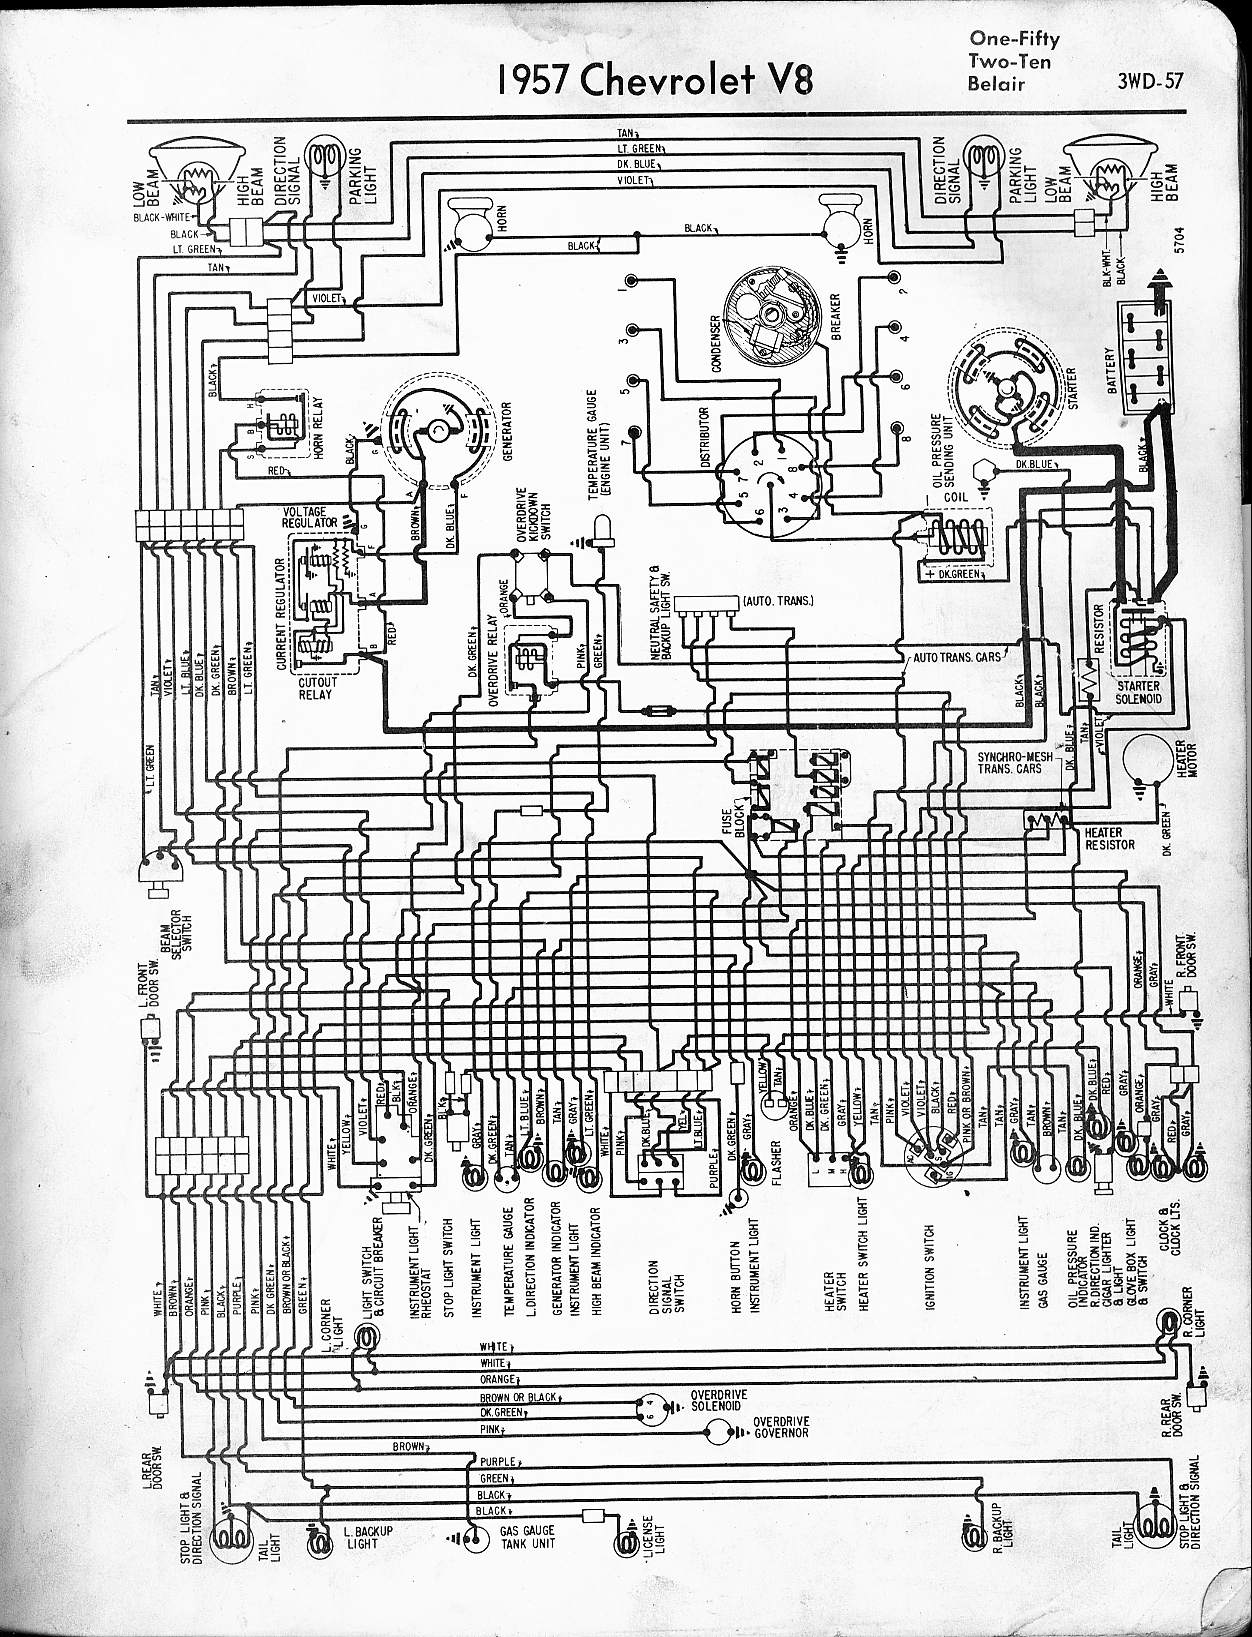 57 65 Chevy Wiring Diagrams 2005 Chevy Wiring Diagram 57 Chevy Wiring  Diagram